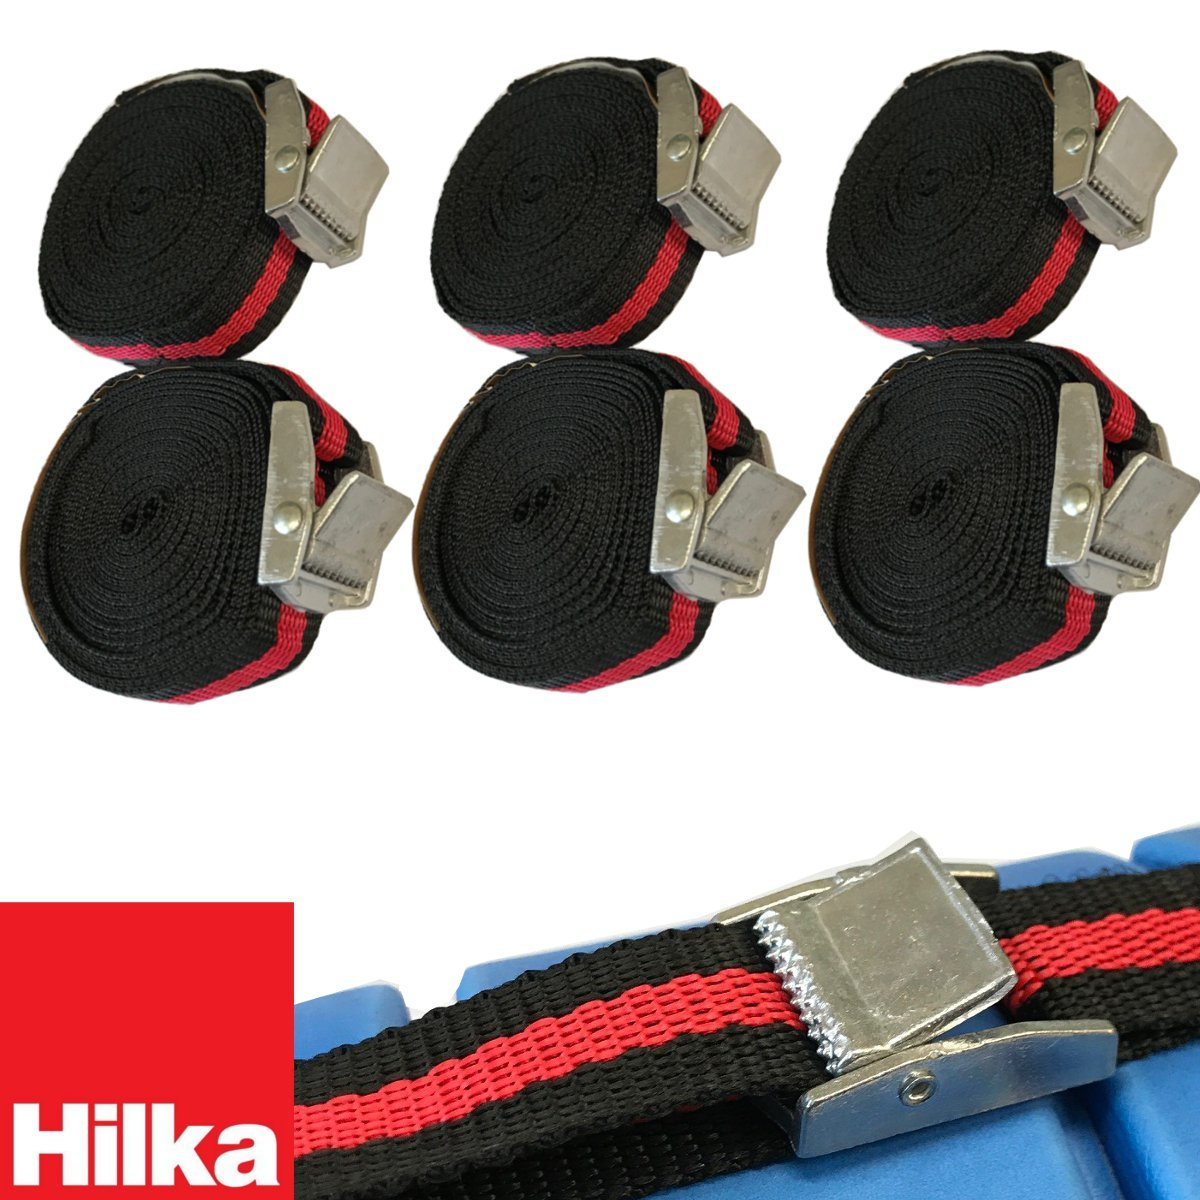 (PACK OF 6) Hilka Tie Down Luggage Straps Cam Buckle Style Straps